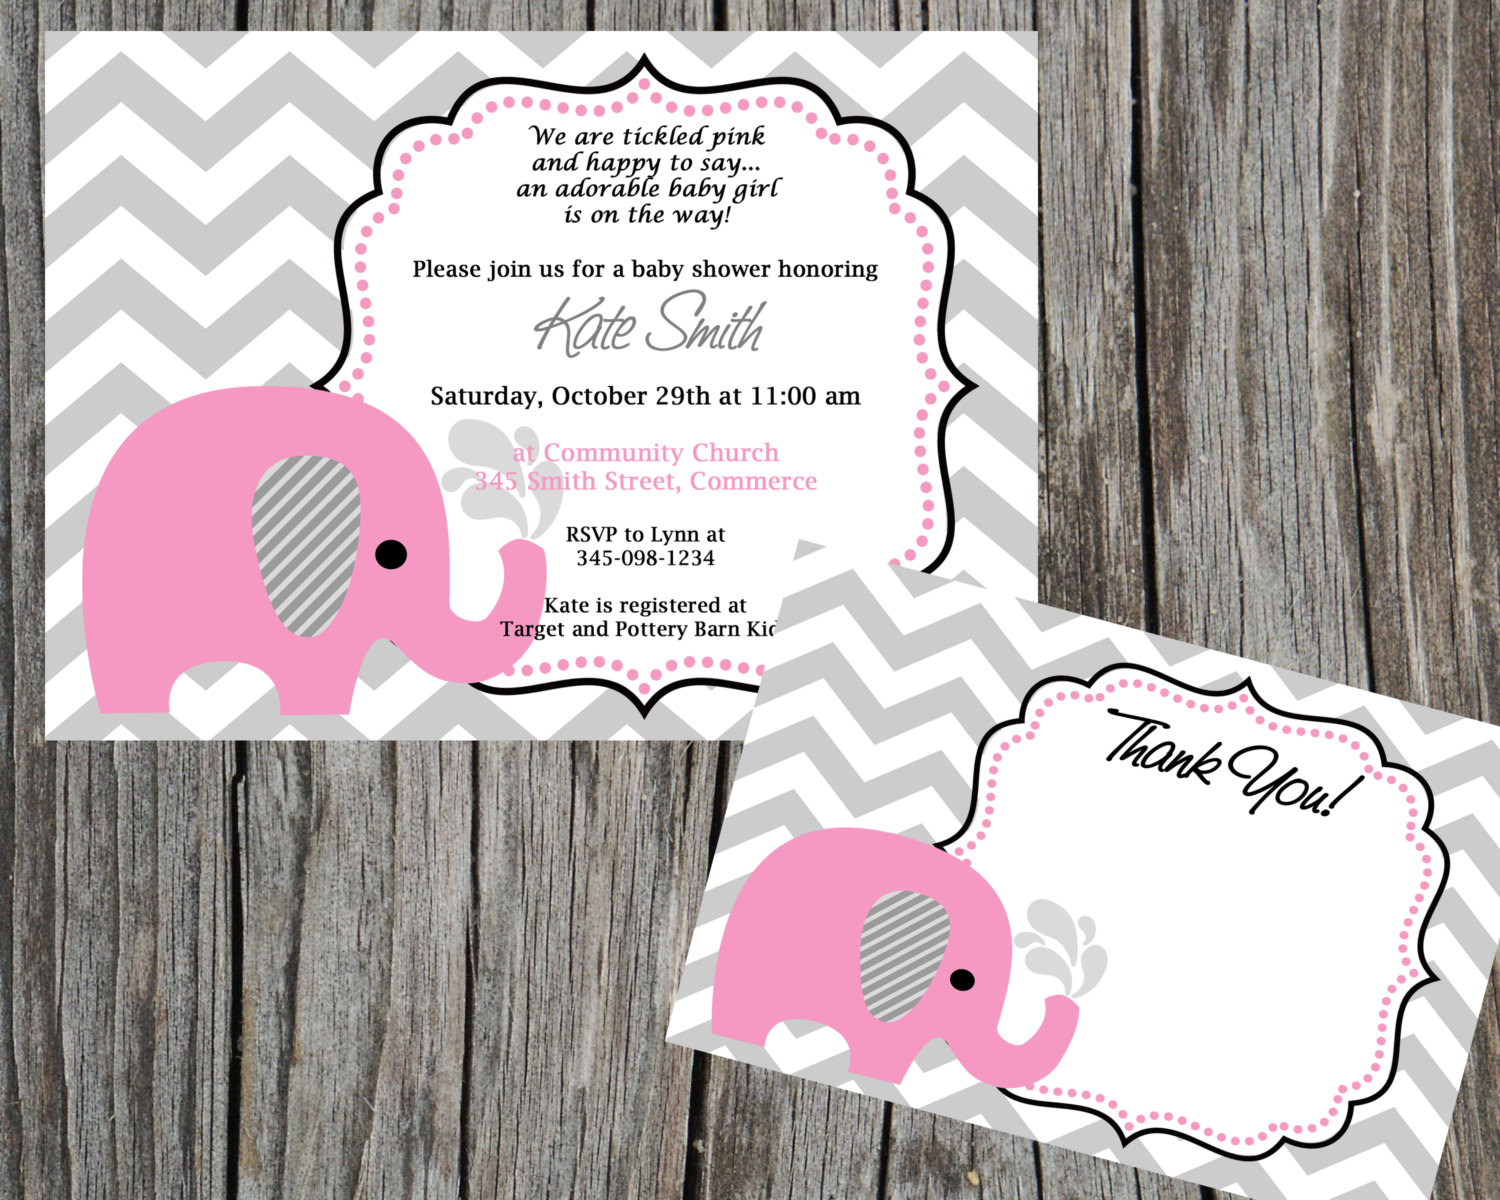 Full Size of Baby Shower:inspirational Elephant Baby Shower Invitations Photo Concepts Elephant Baby Shower Invitations Practical Baby Shower Gifts Baby Shower Wishes Baby Shower Messages Baby Shower Items Noah's Ark Baby Shower